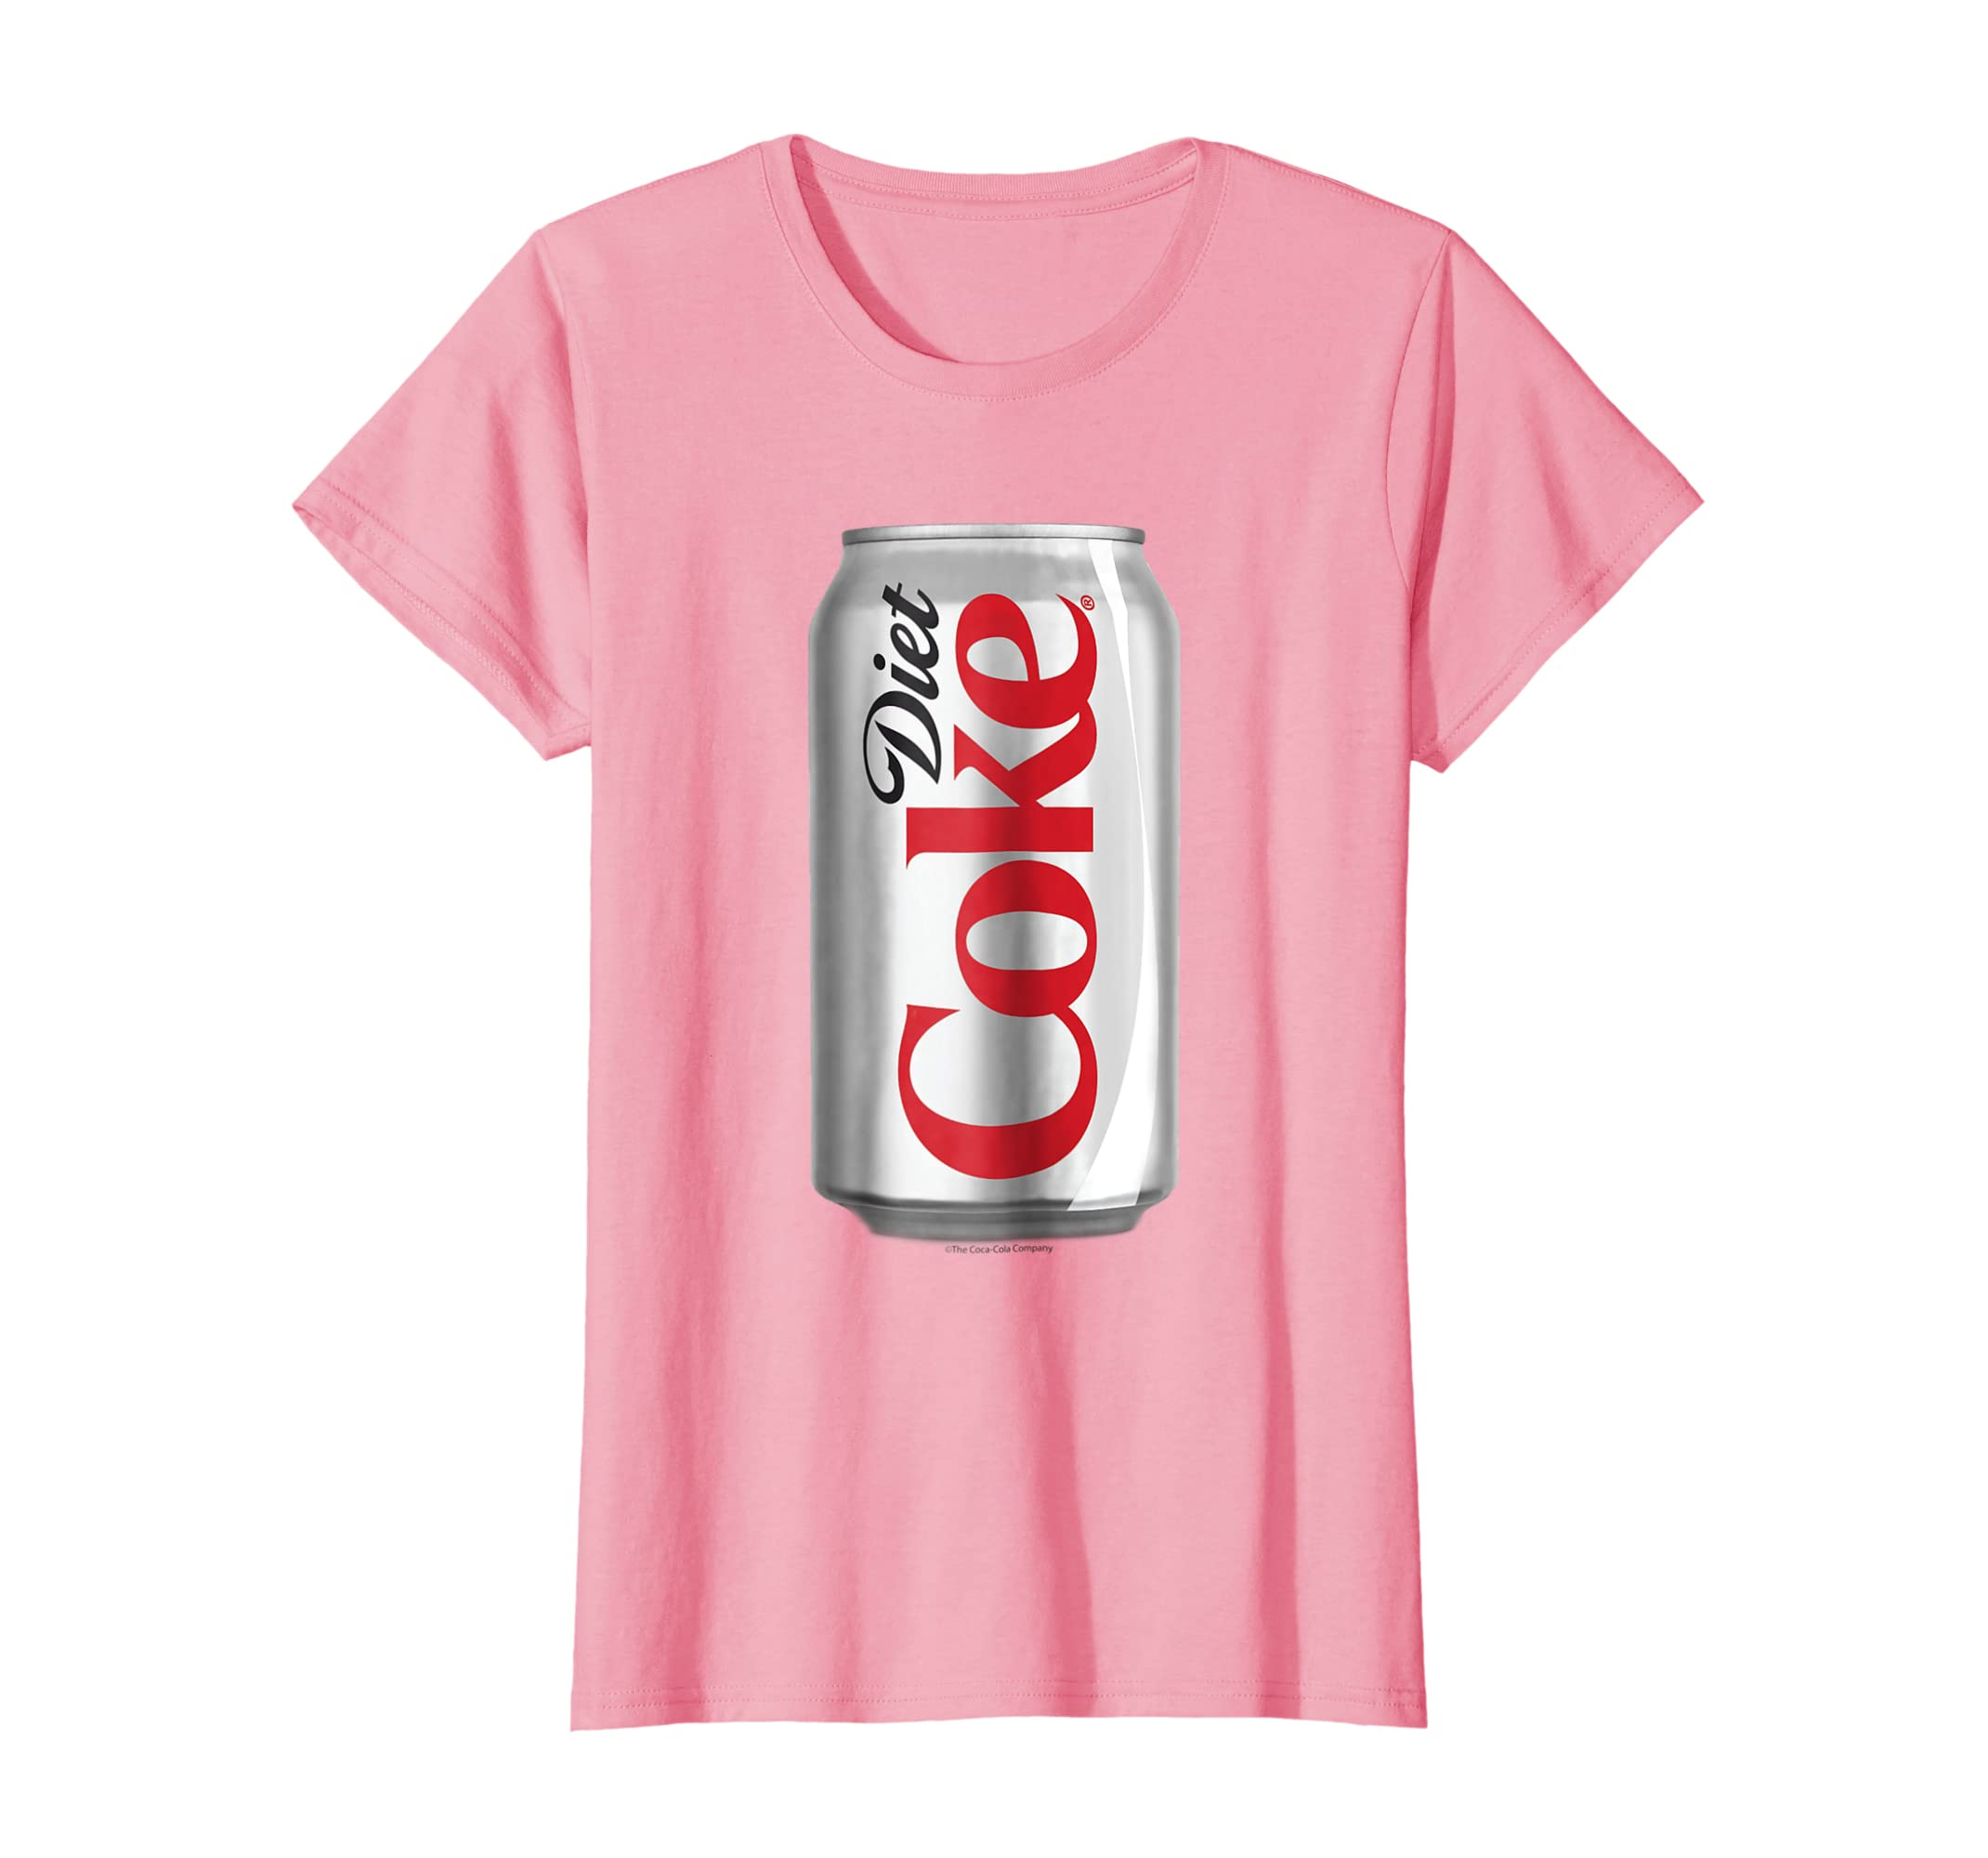 1929c09a4b9 Amazon.com  Coca-Cola Diet Coke Can Graphic T-Shirt  Clothing